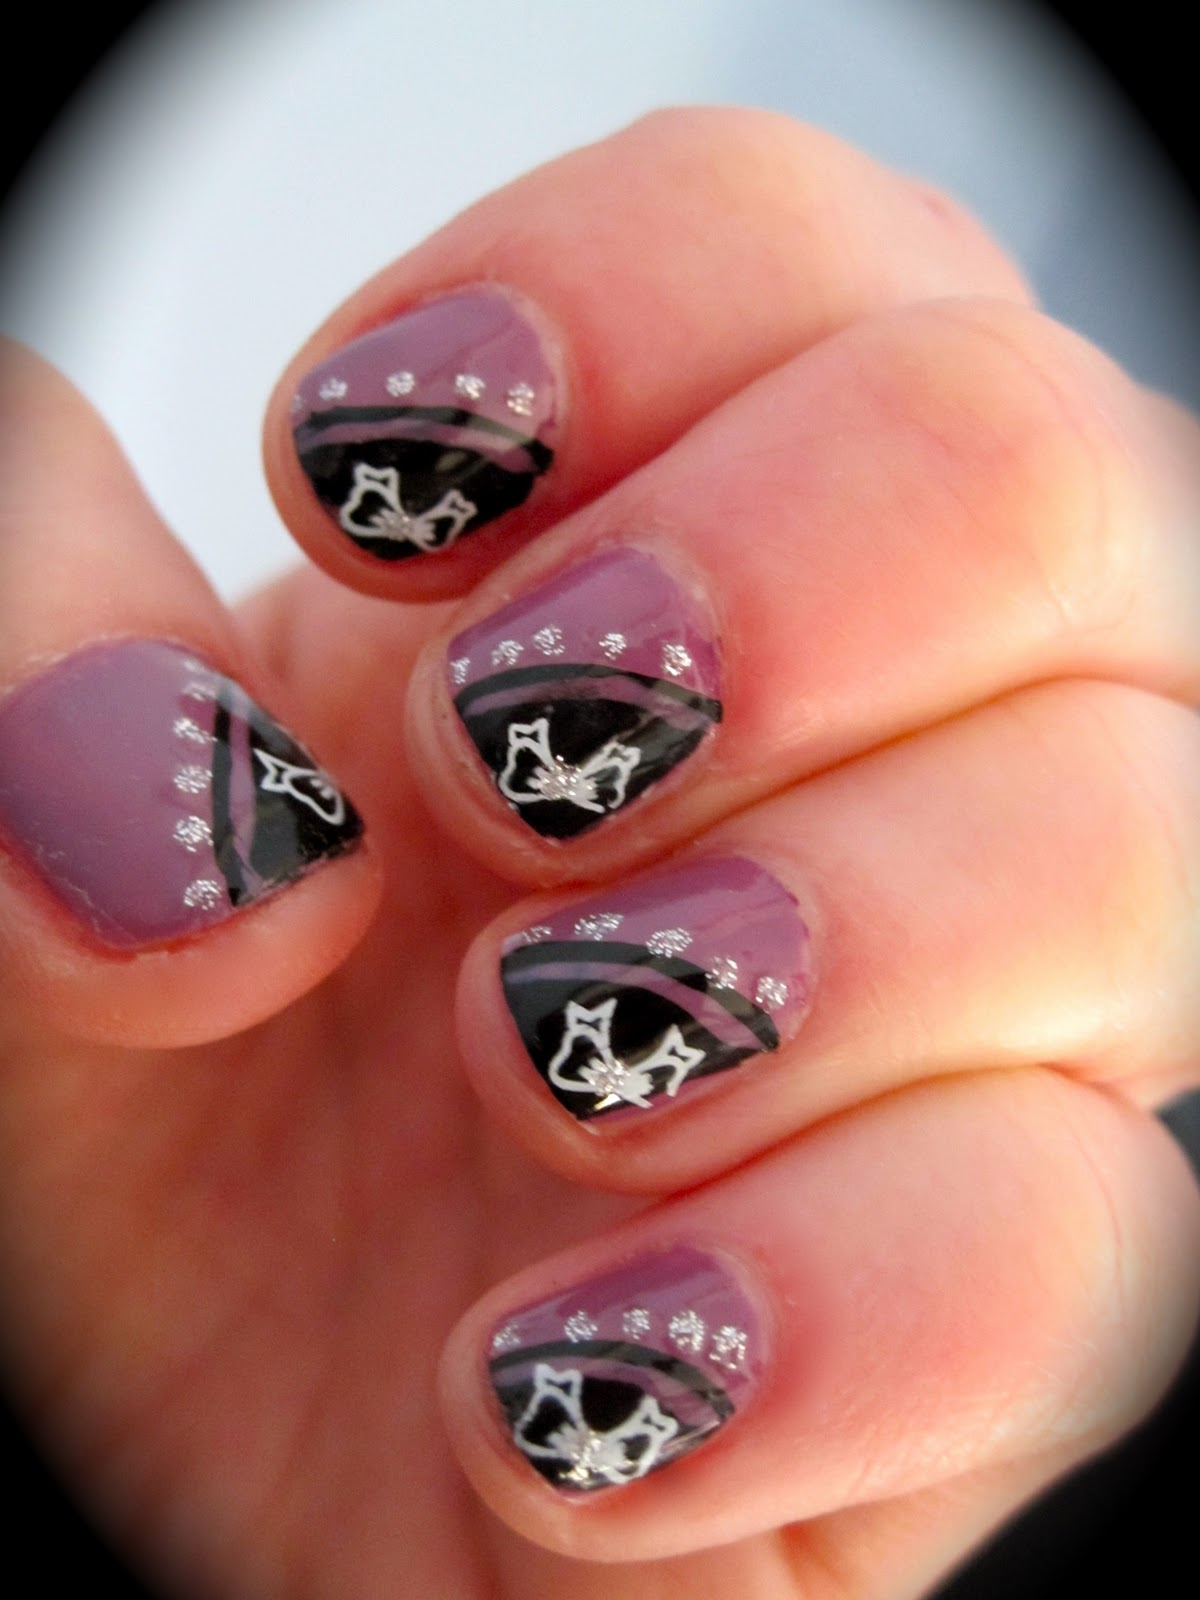 The Glamorous Fake hello kitty nails designs Images